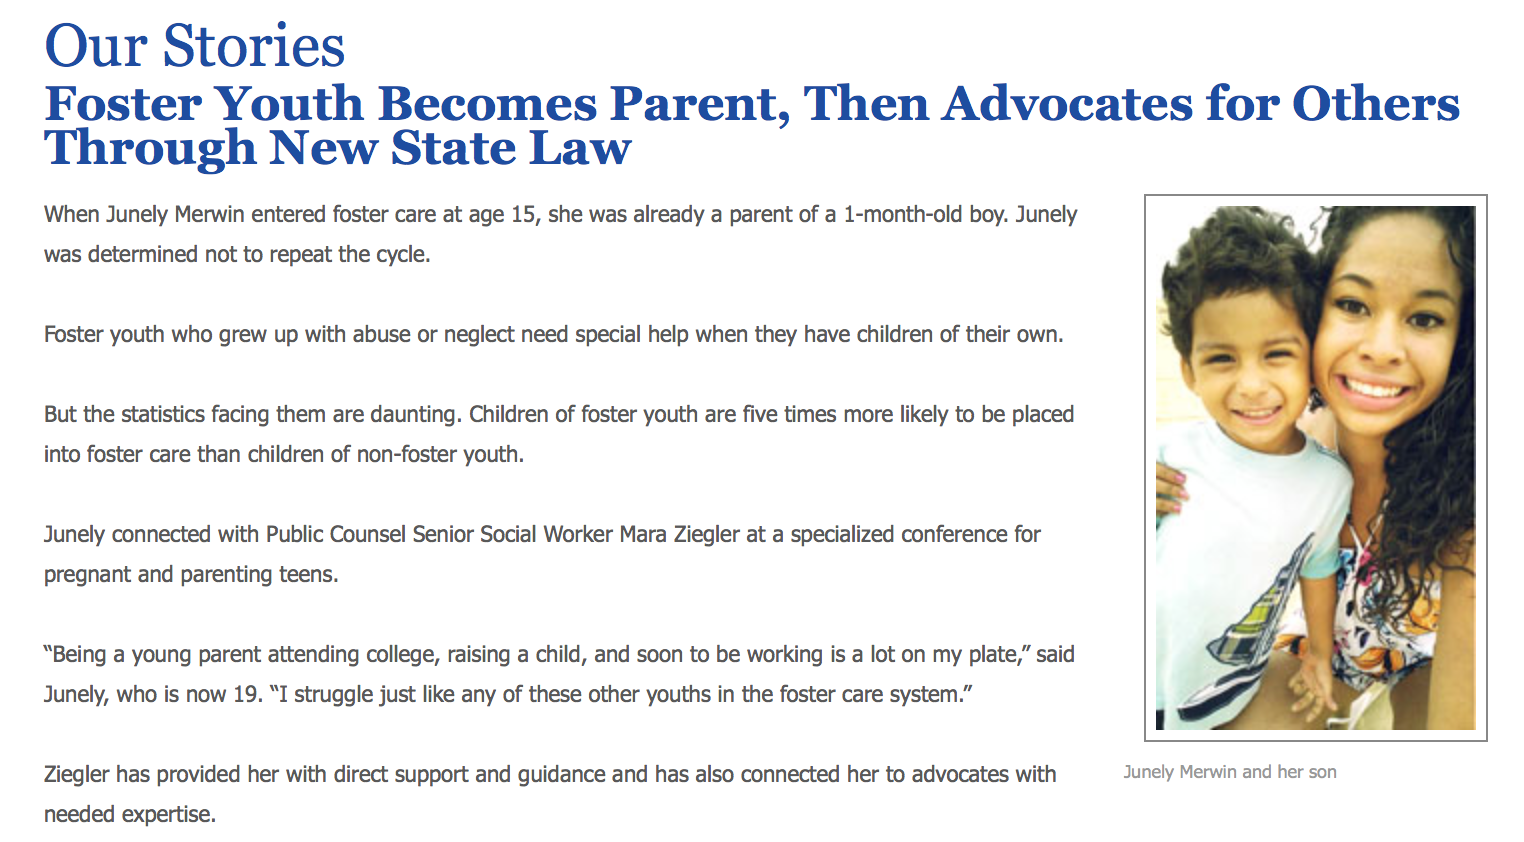 September 2013, Governor Jerry Brown signs SB528 into law. Click on image for more details.